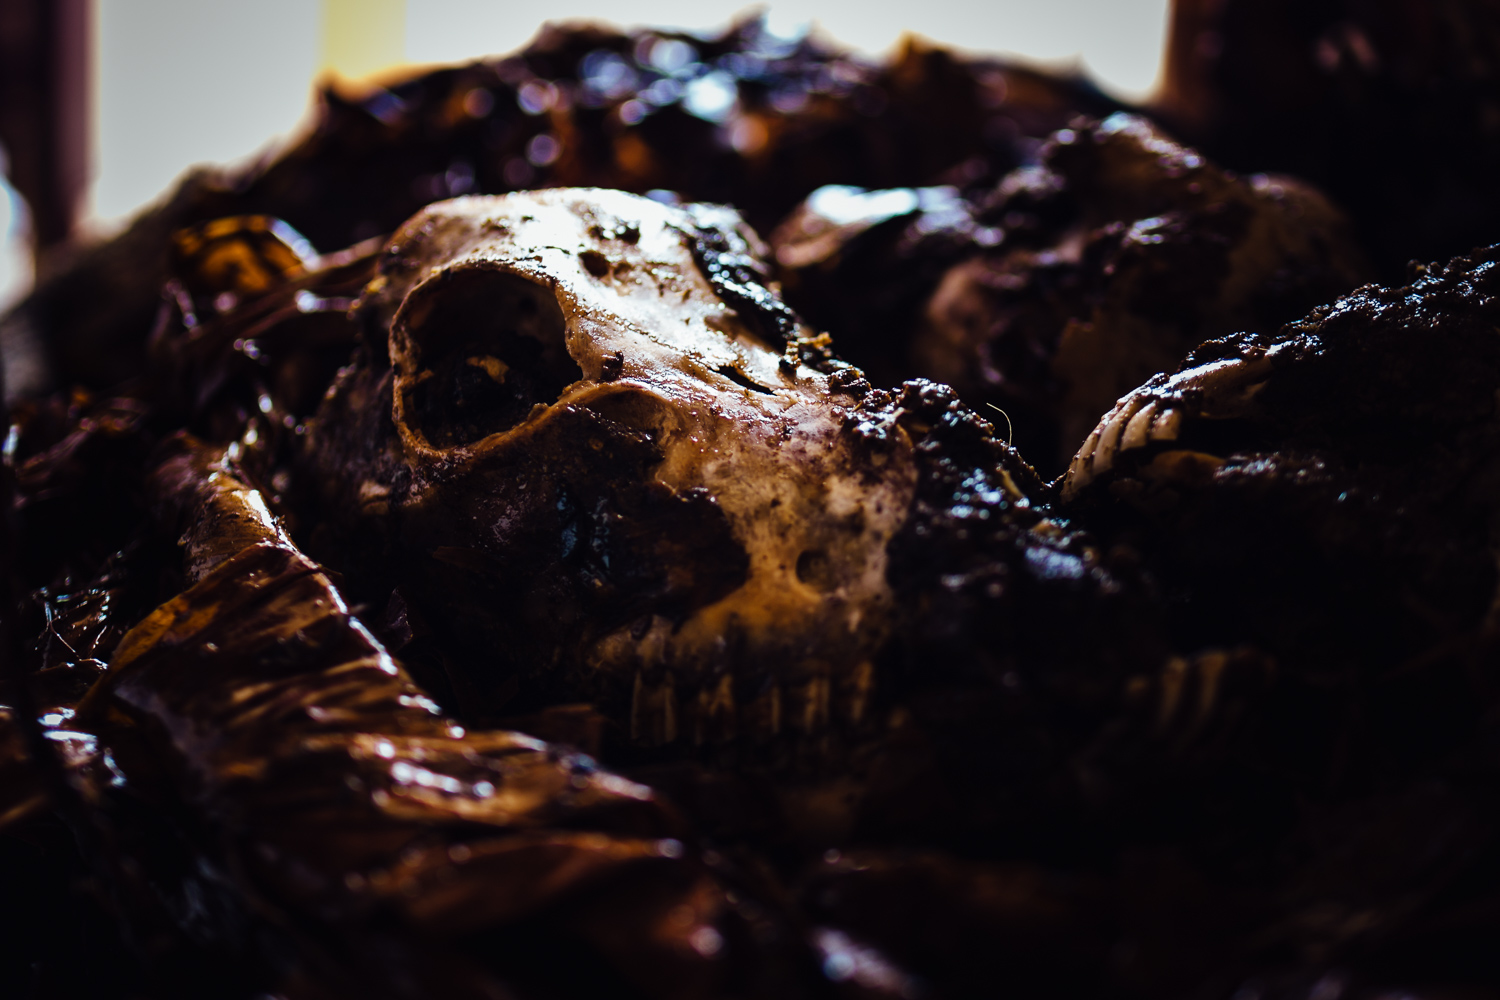 Skull-Food-Feast-Eid-Tradition-Village-Oman-Daniel-Durazo-Photography-Durazophotography